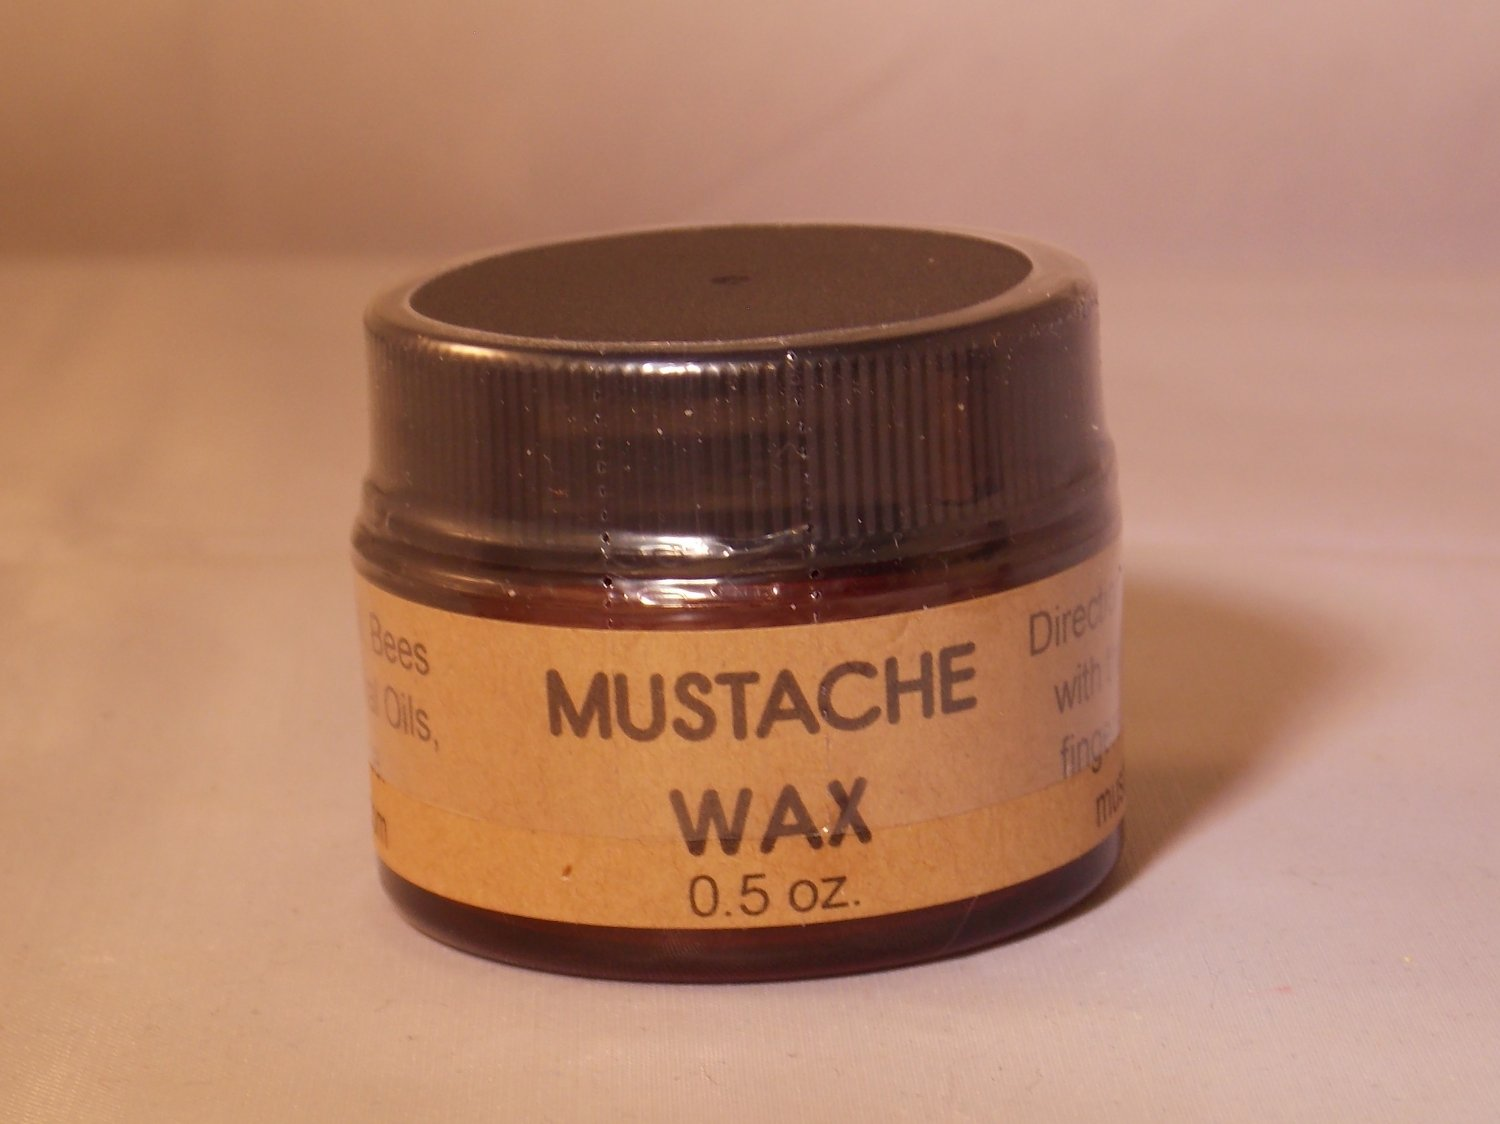 MUSTACHE WAX, Minty Bay Rum, Men's Skin Care, Shaving, Grooming, Personal Care, mustache tamer